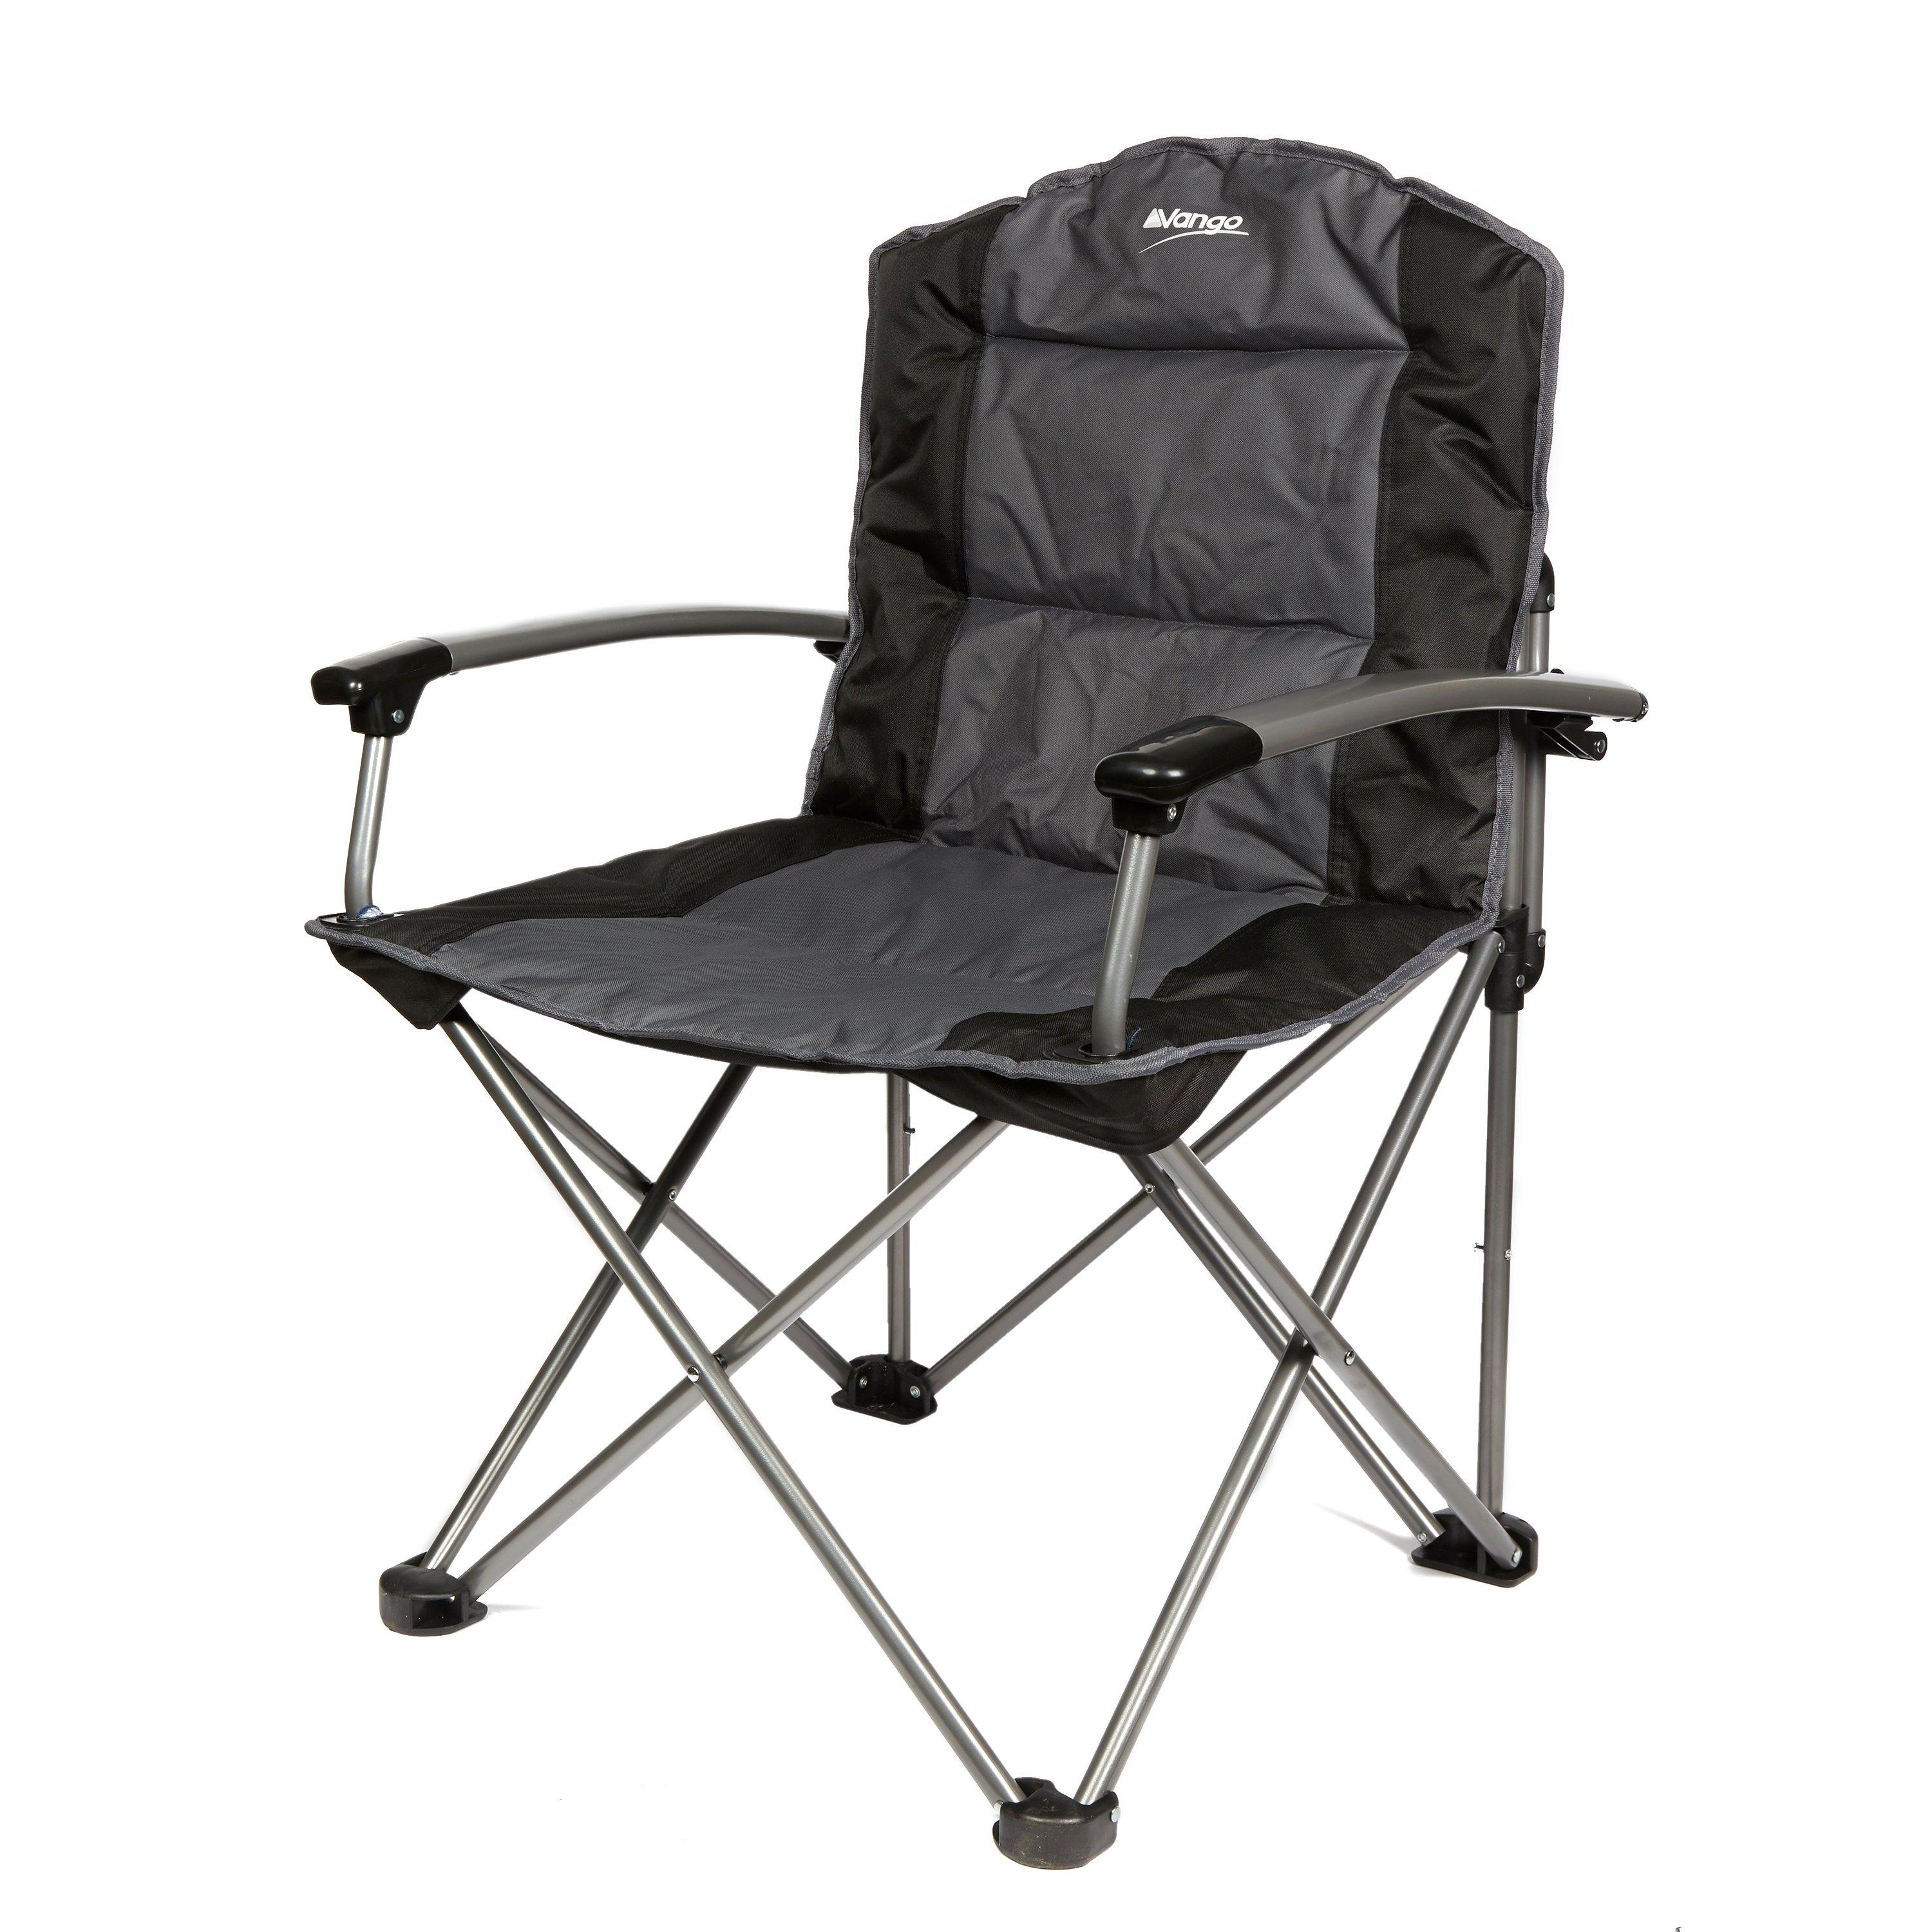 steel chair cost round cream table and chairs folding shop for cheap products save online